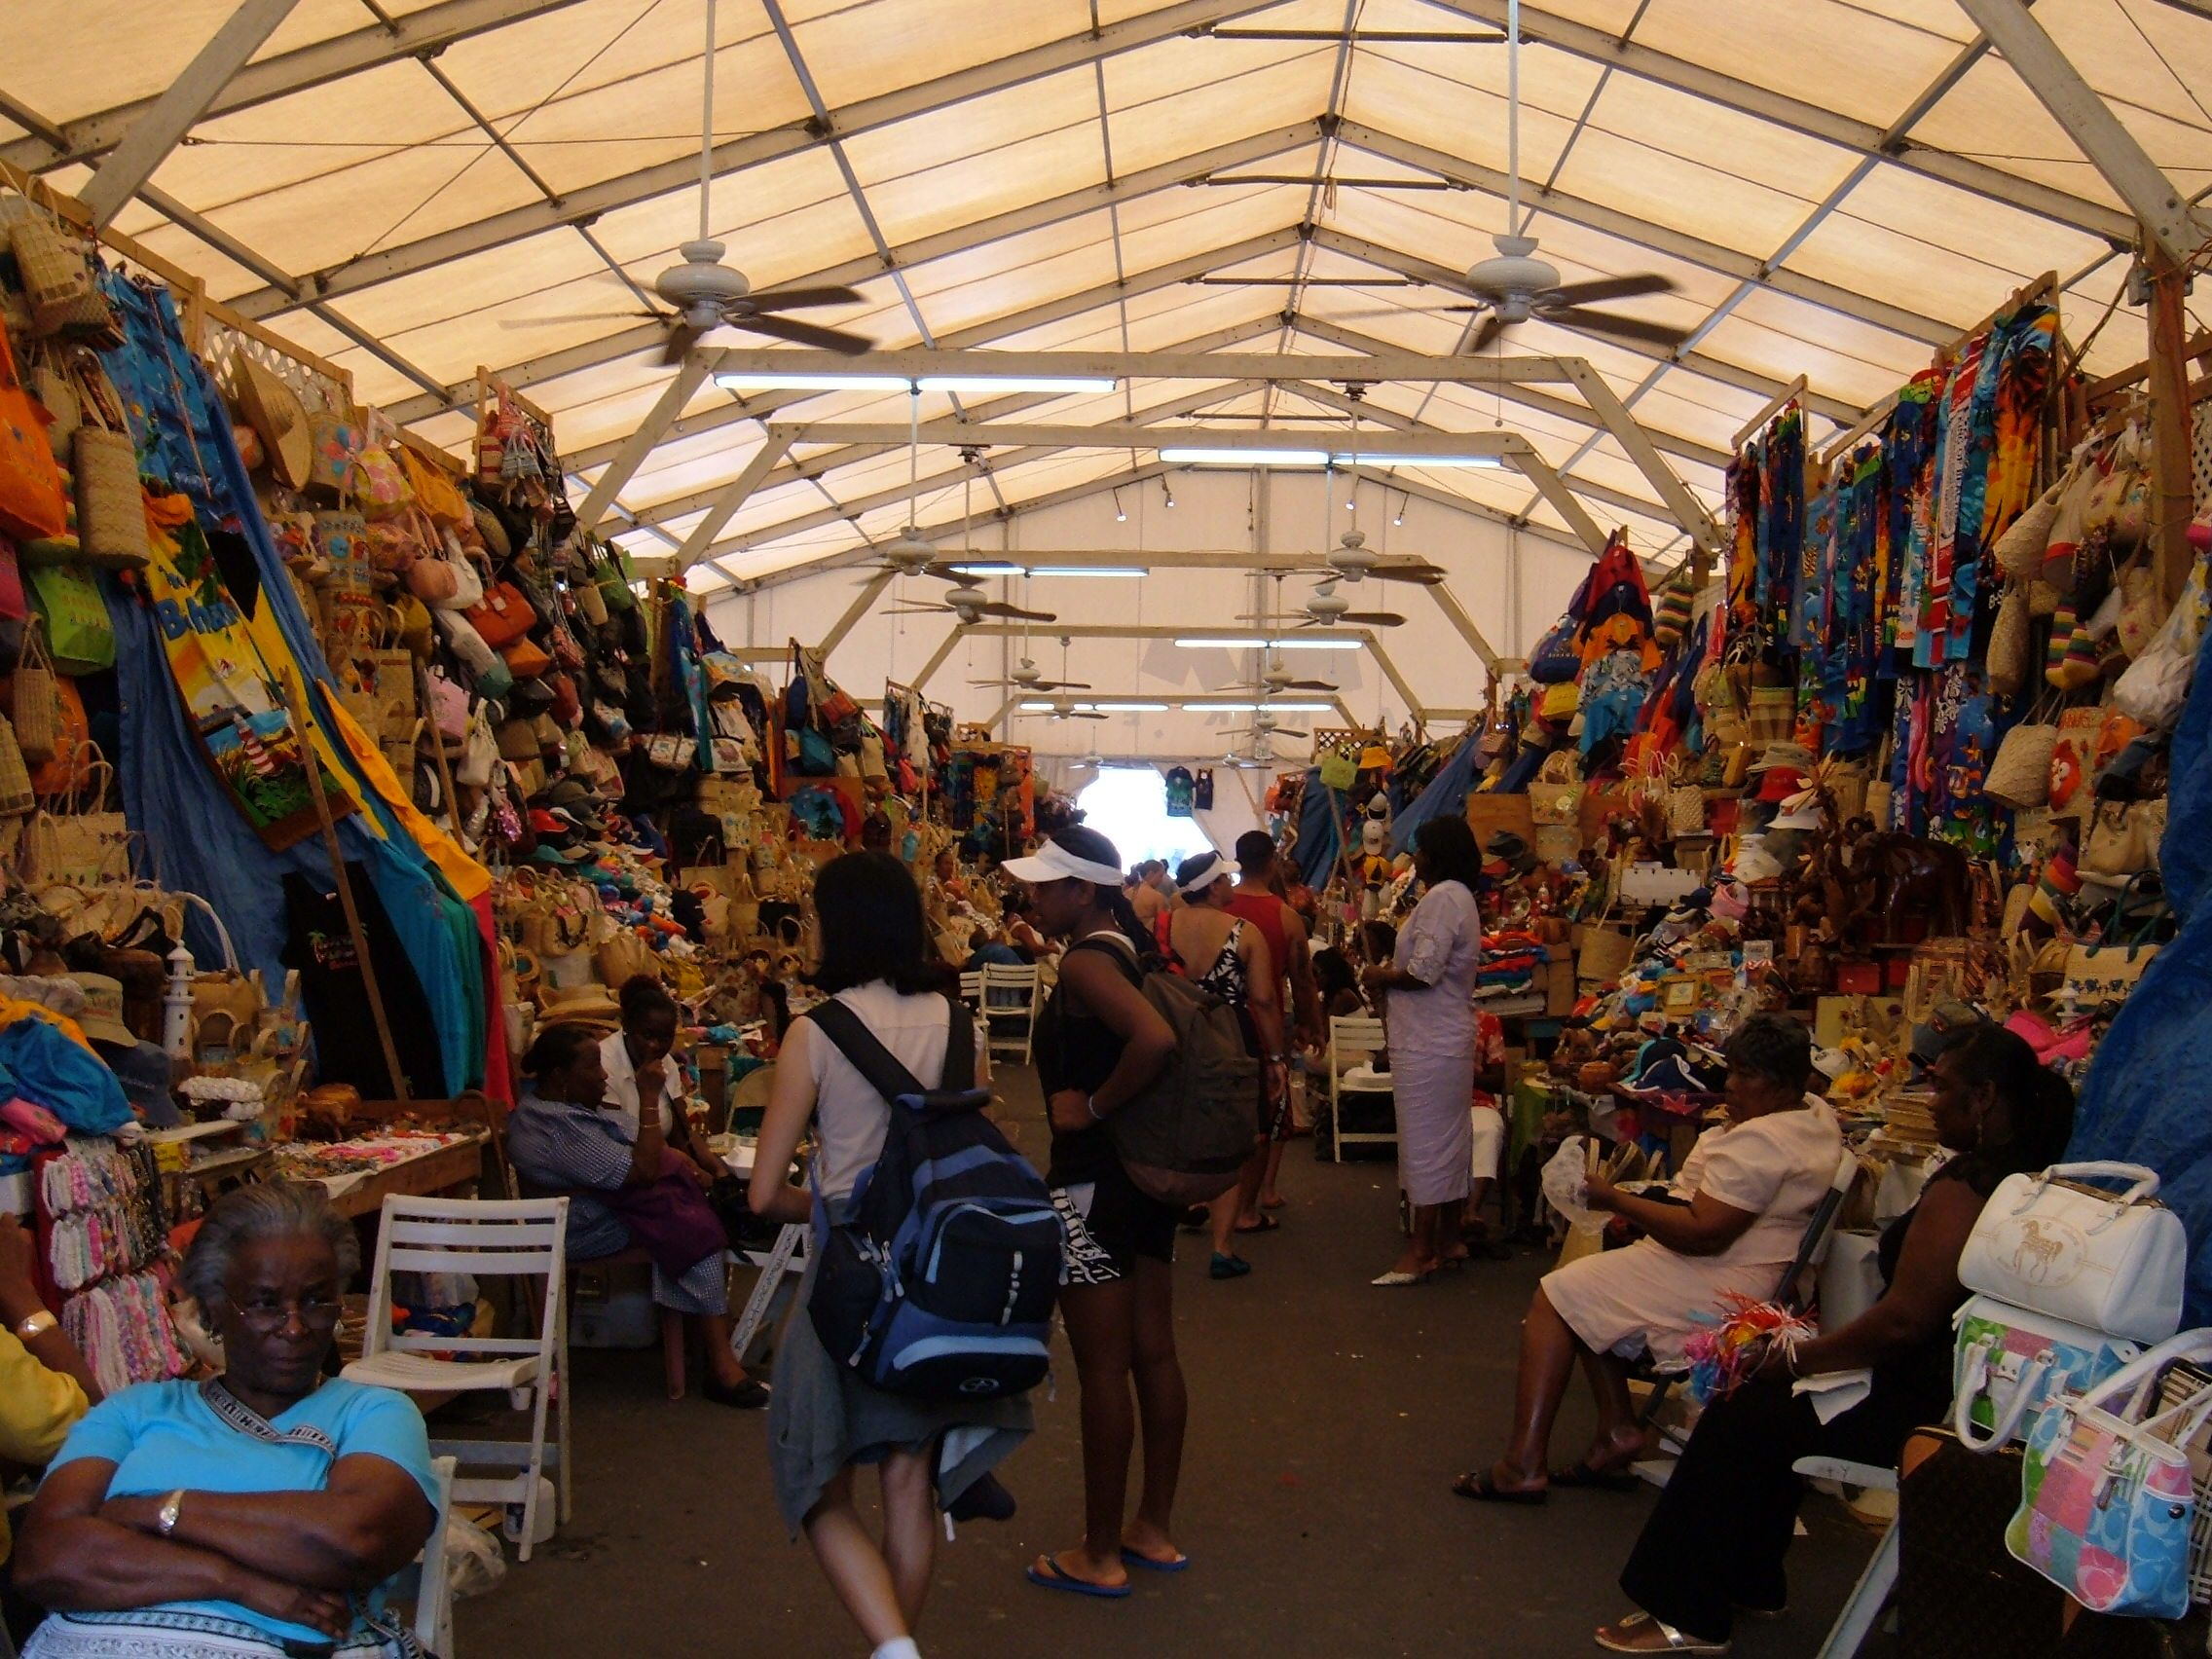 straw market bahamas pictures  Yahoo Search Results  Nassau